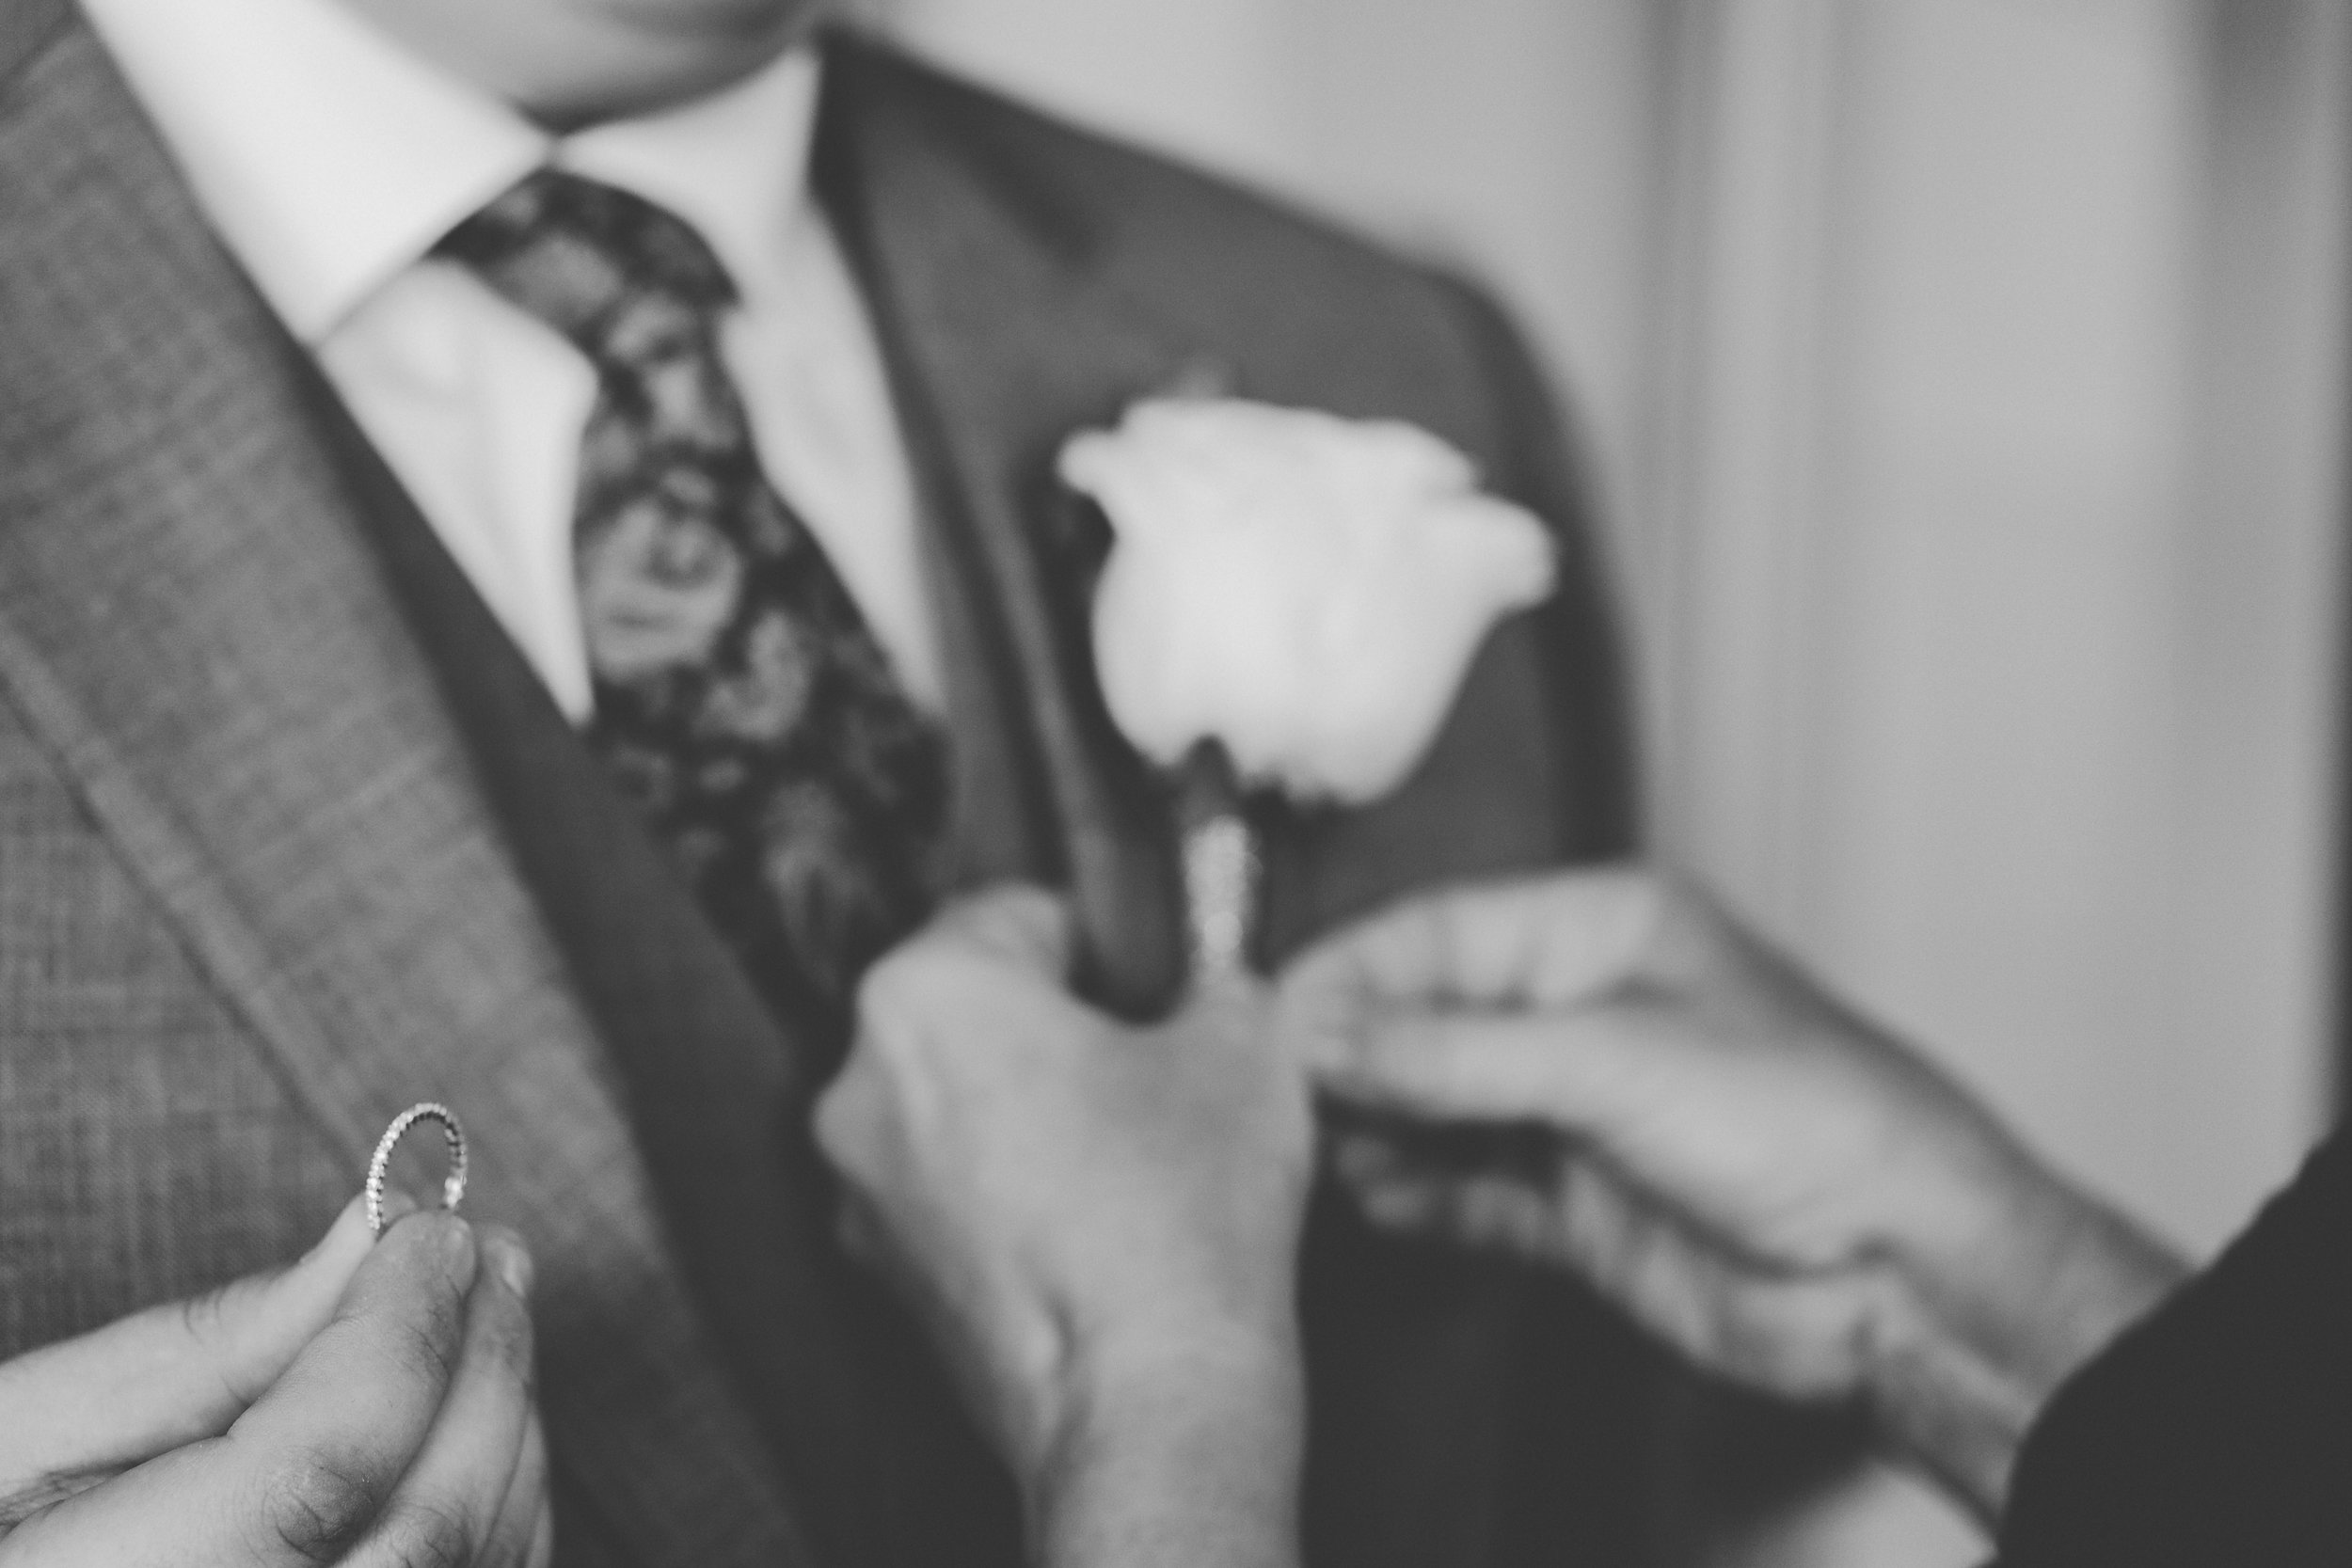 Groom holding wedding ring while getting dressed